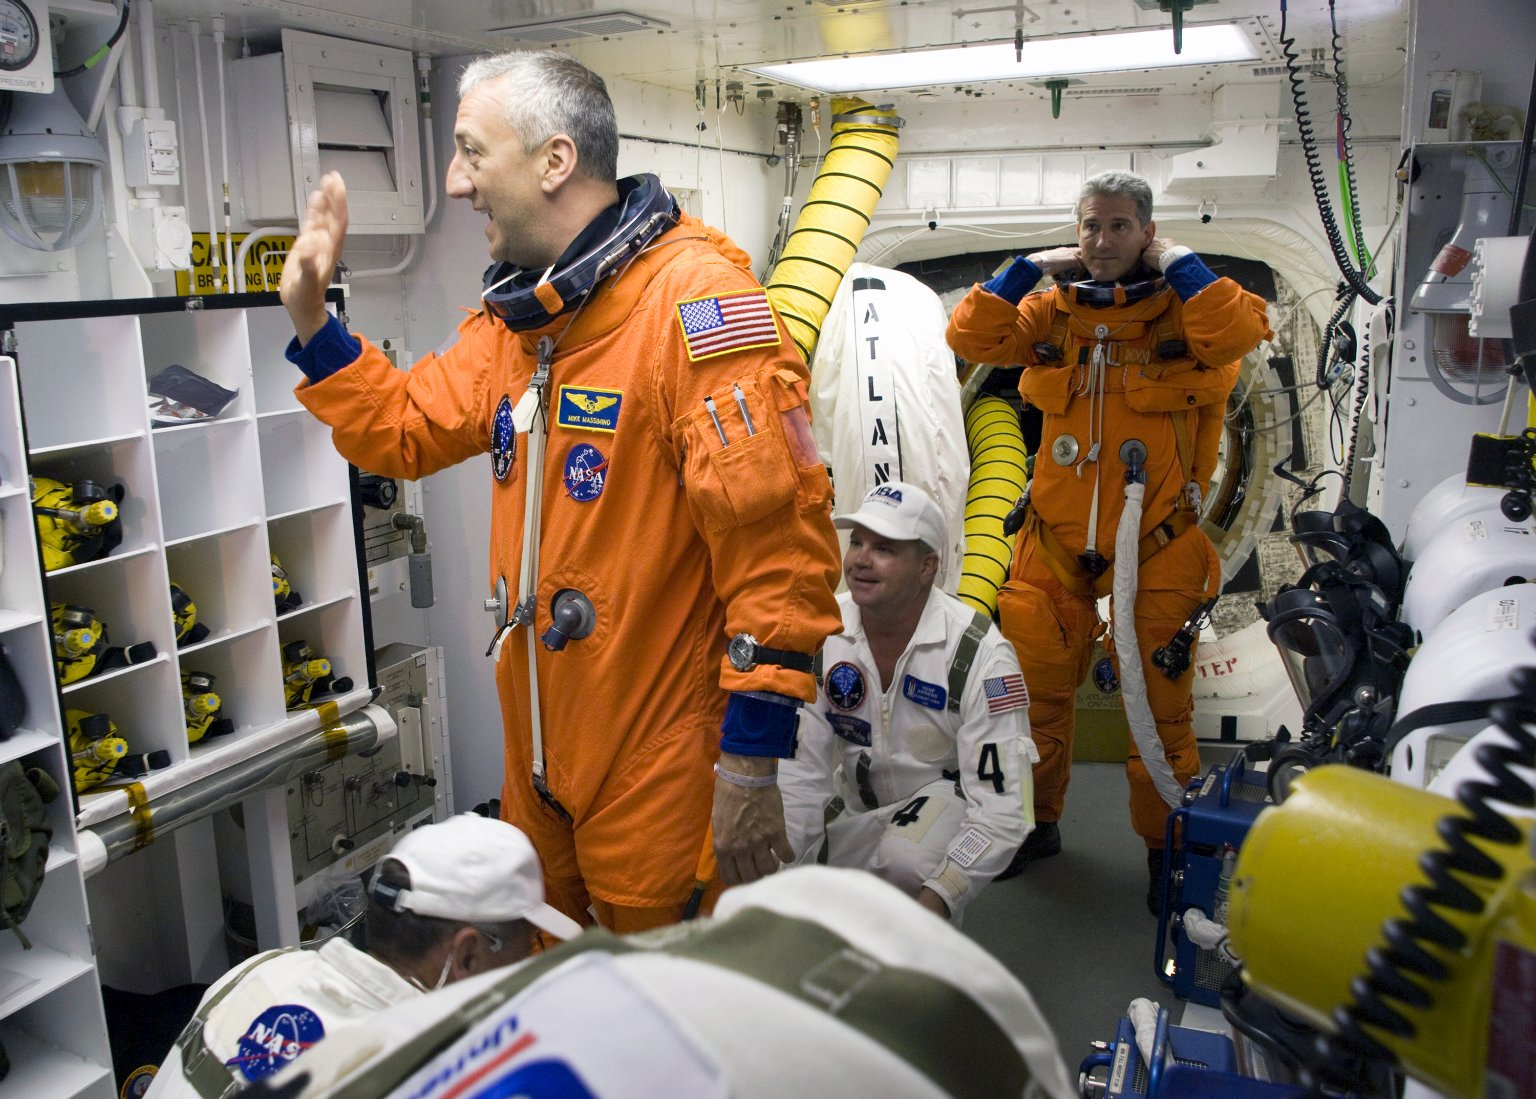 STS-125 Crew prepares to board the Space Shuttle Atlantis